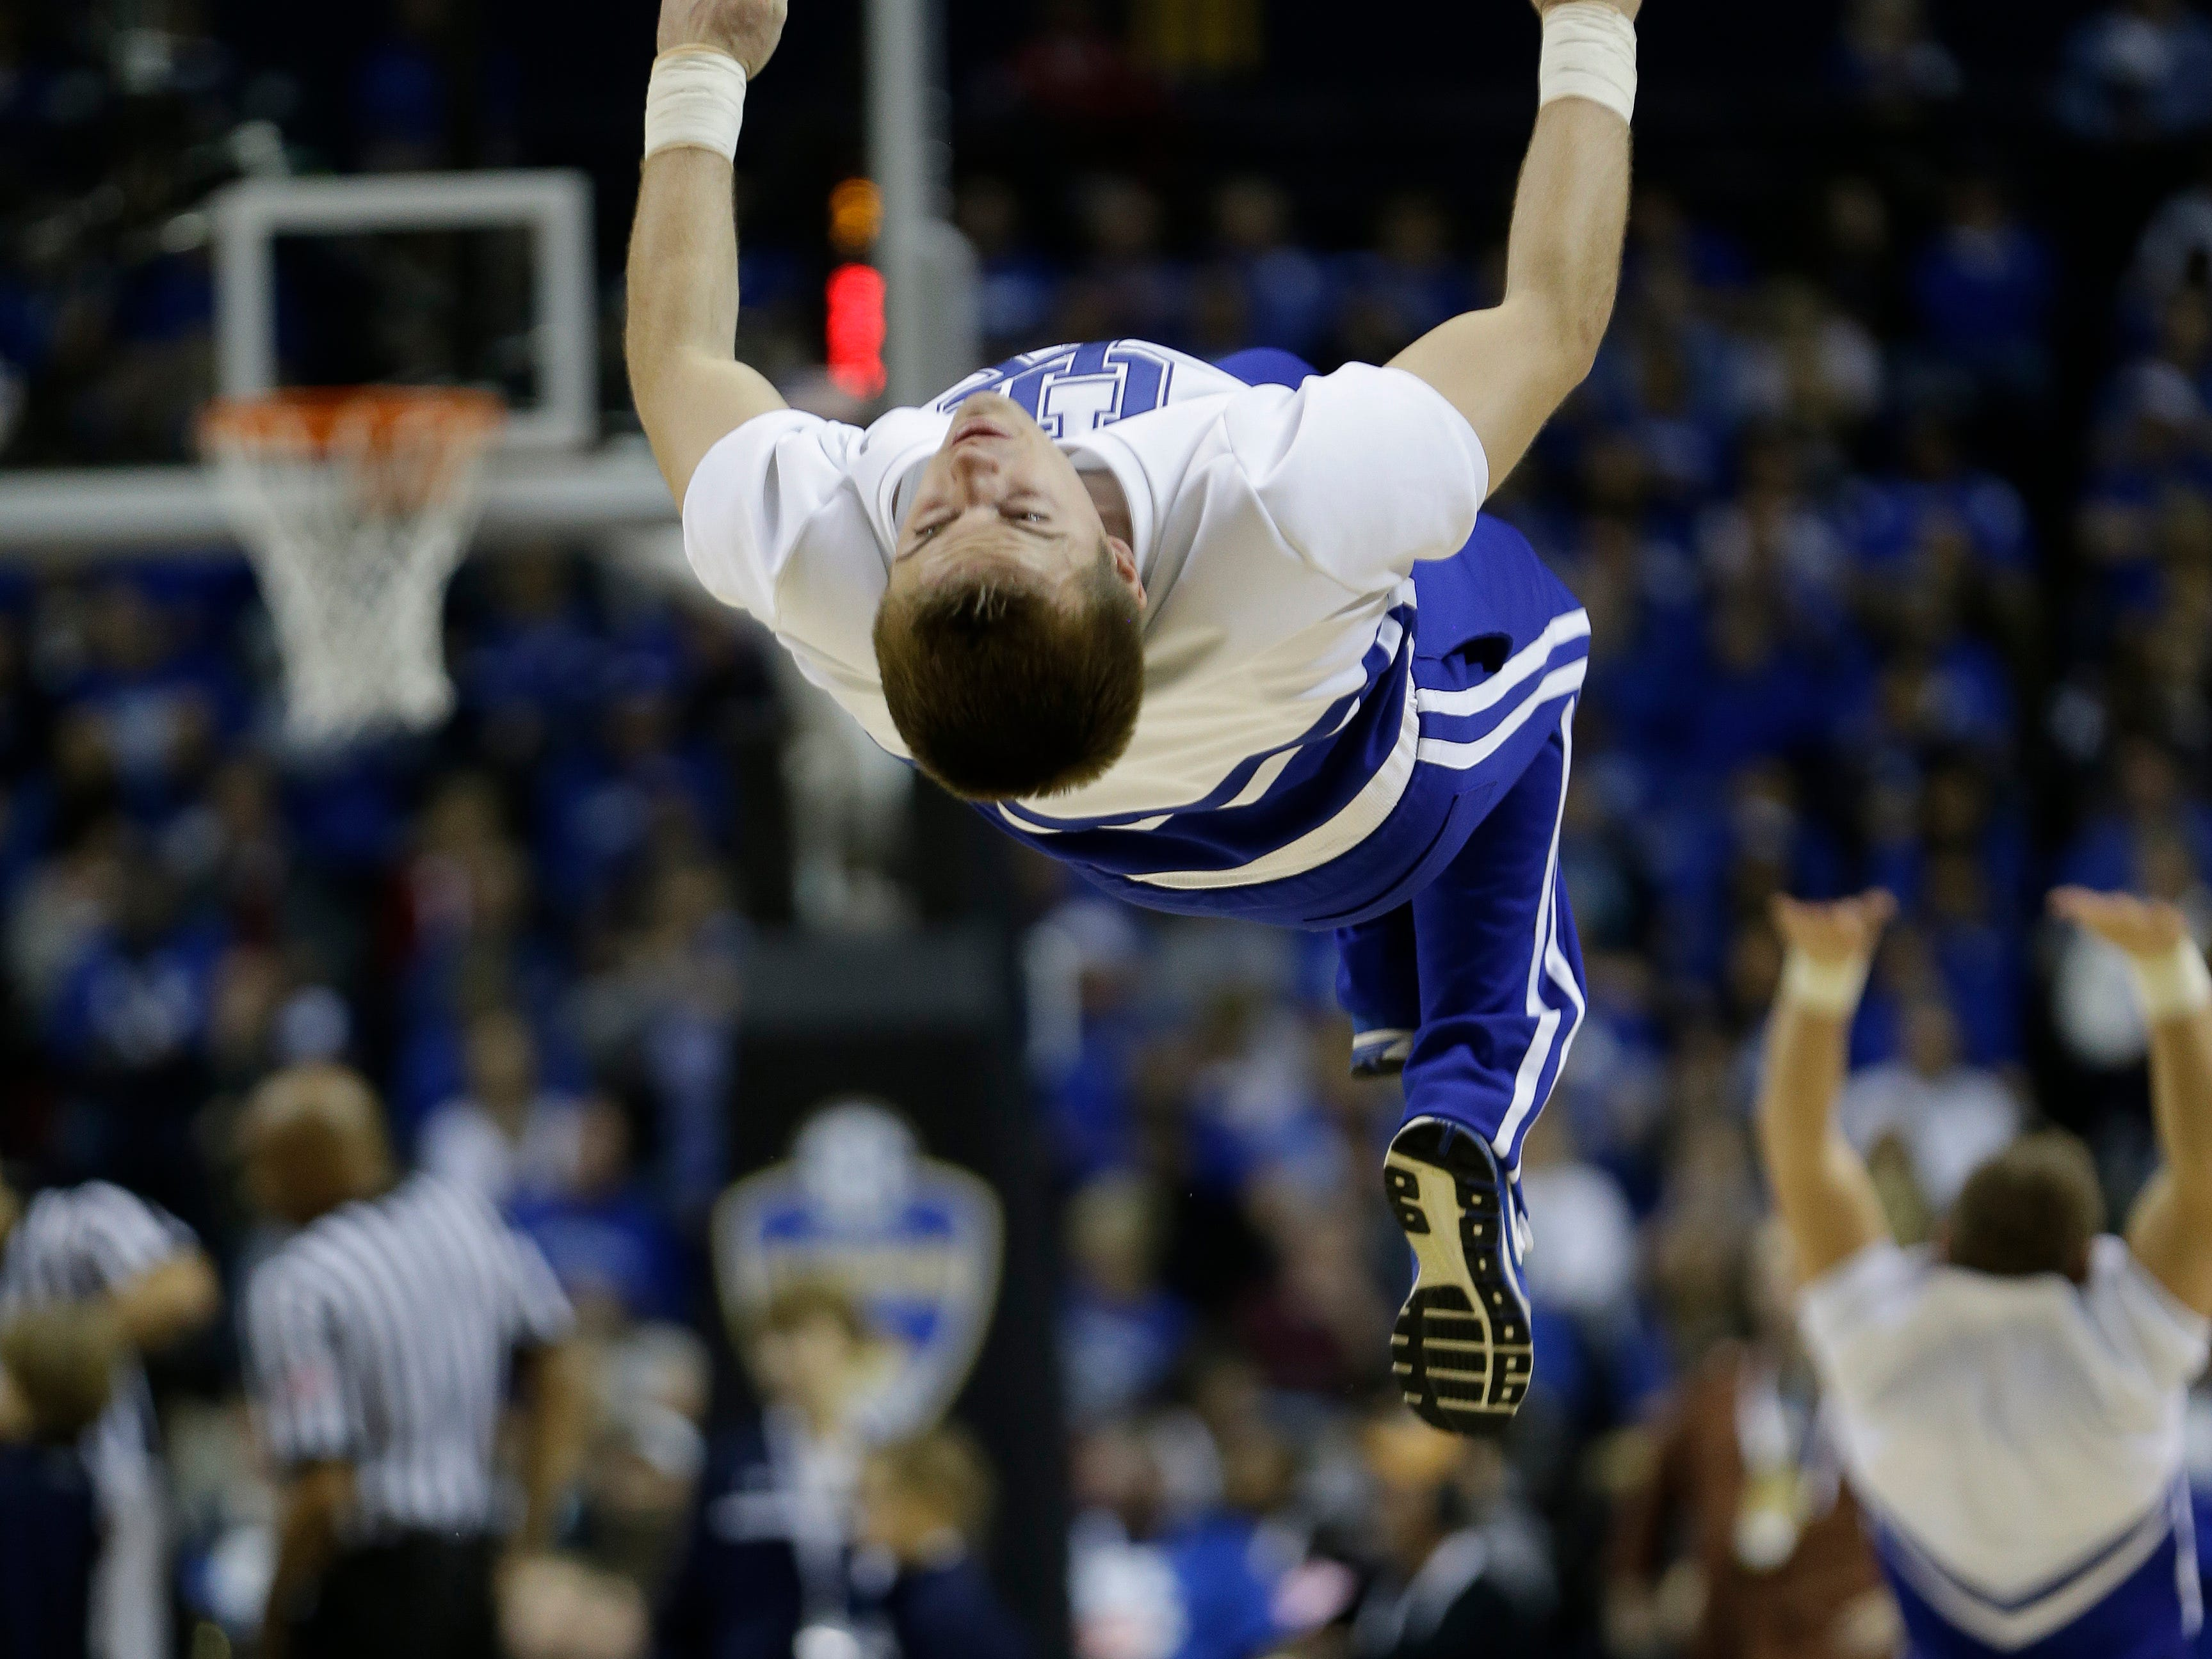 Kentucky cheerleaders perform during the second half of an NCAA college basketball game in the semifinal round of the Southeastern Conference tournament against Auburn, Saturday, March 14, 2015, in Nashville, Tenn. (AP Photo/Mark Humphrey)